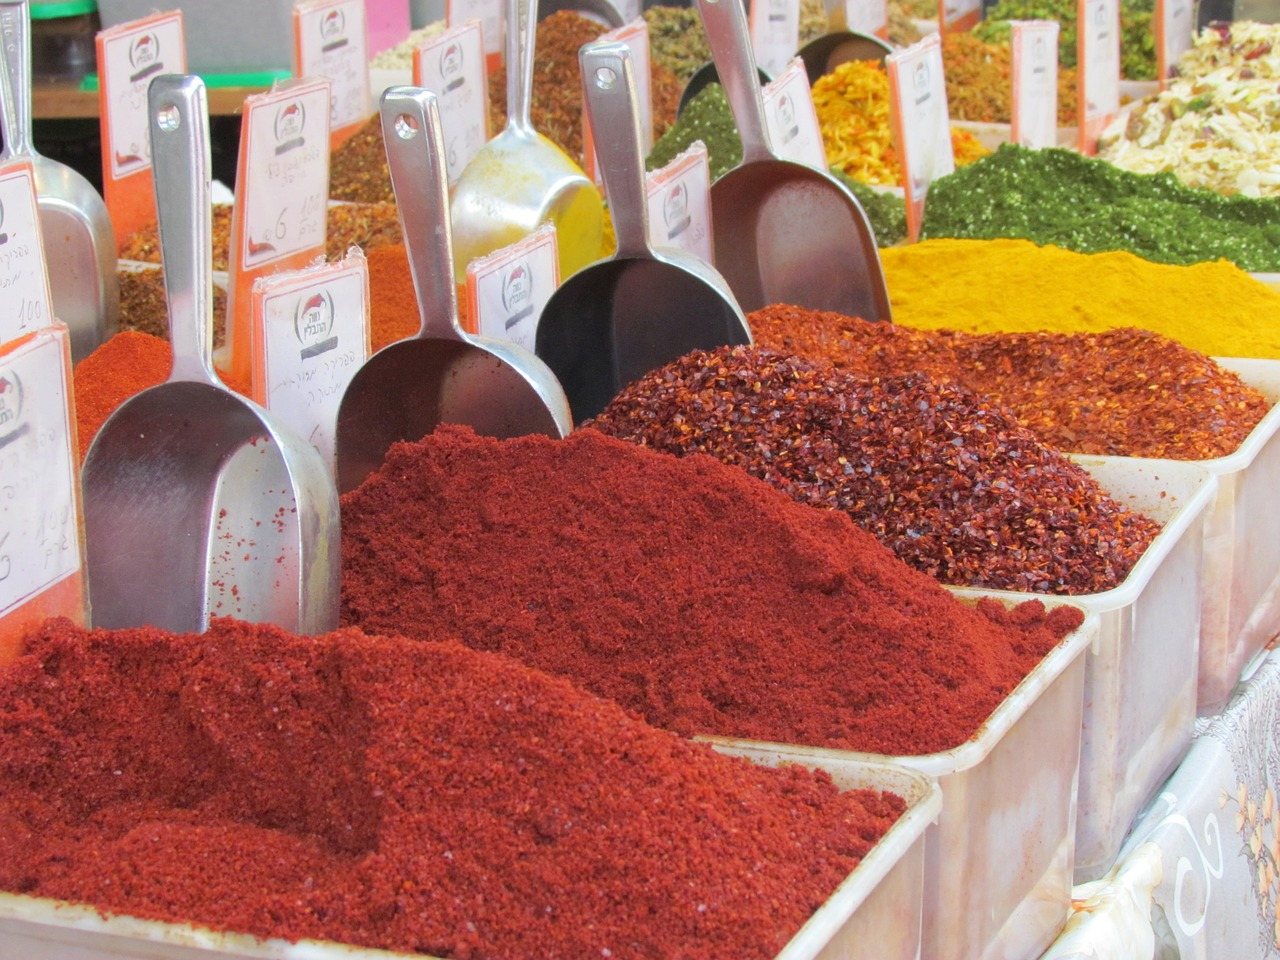 Spices at the market in Jerusalem.